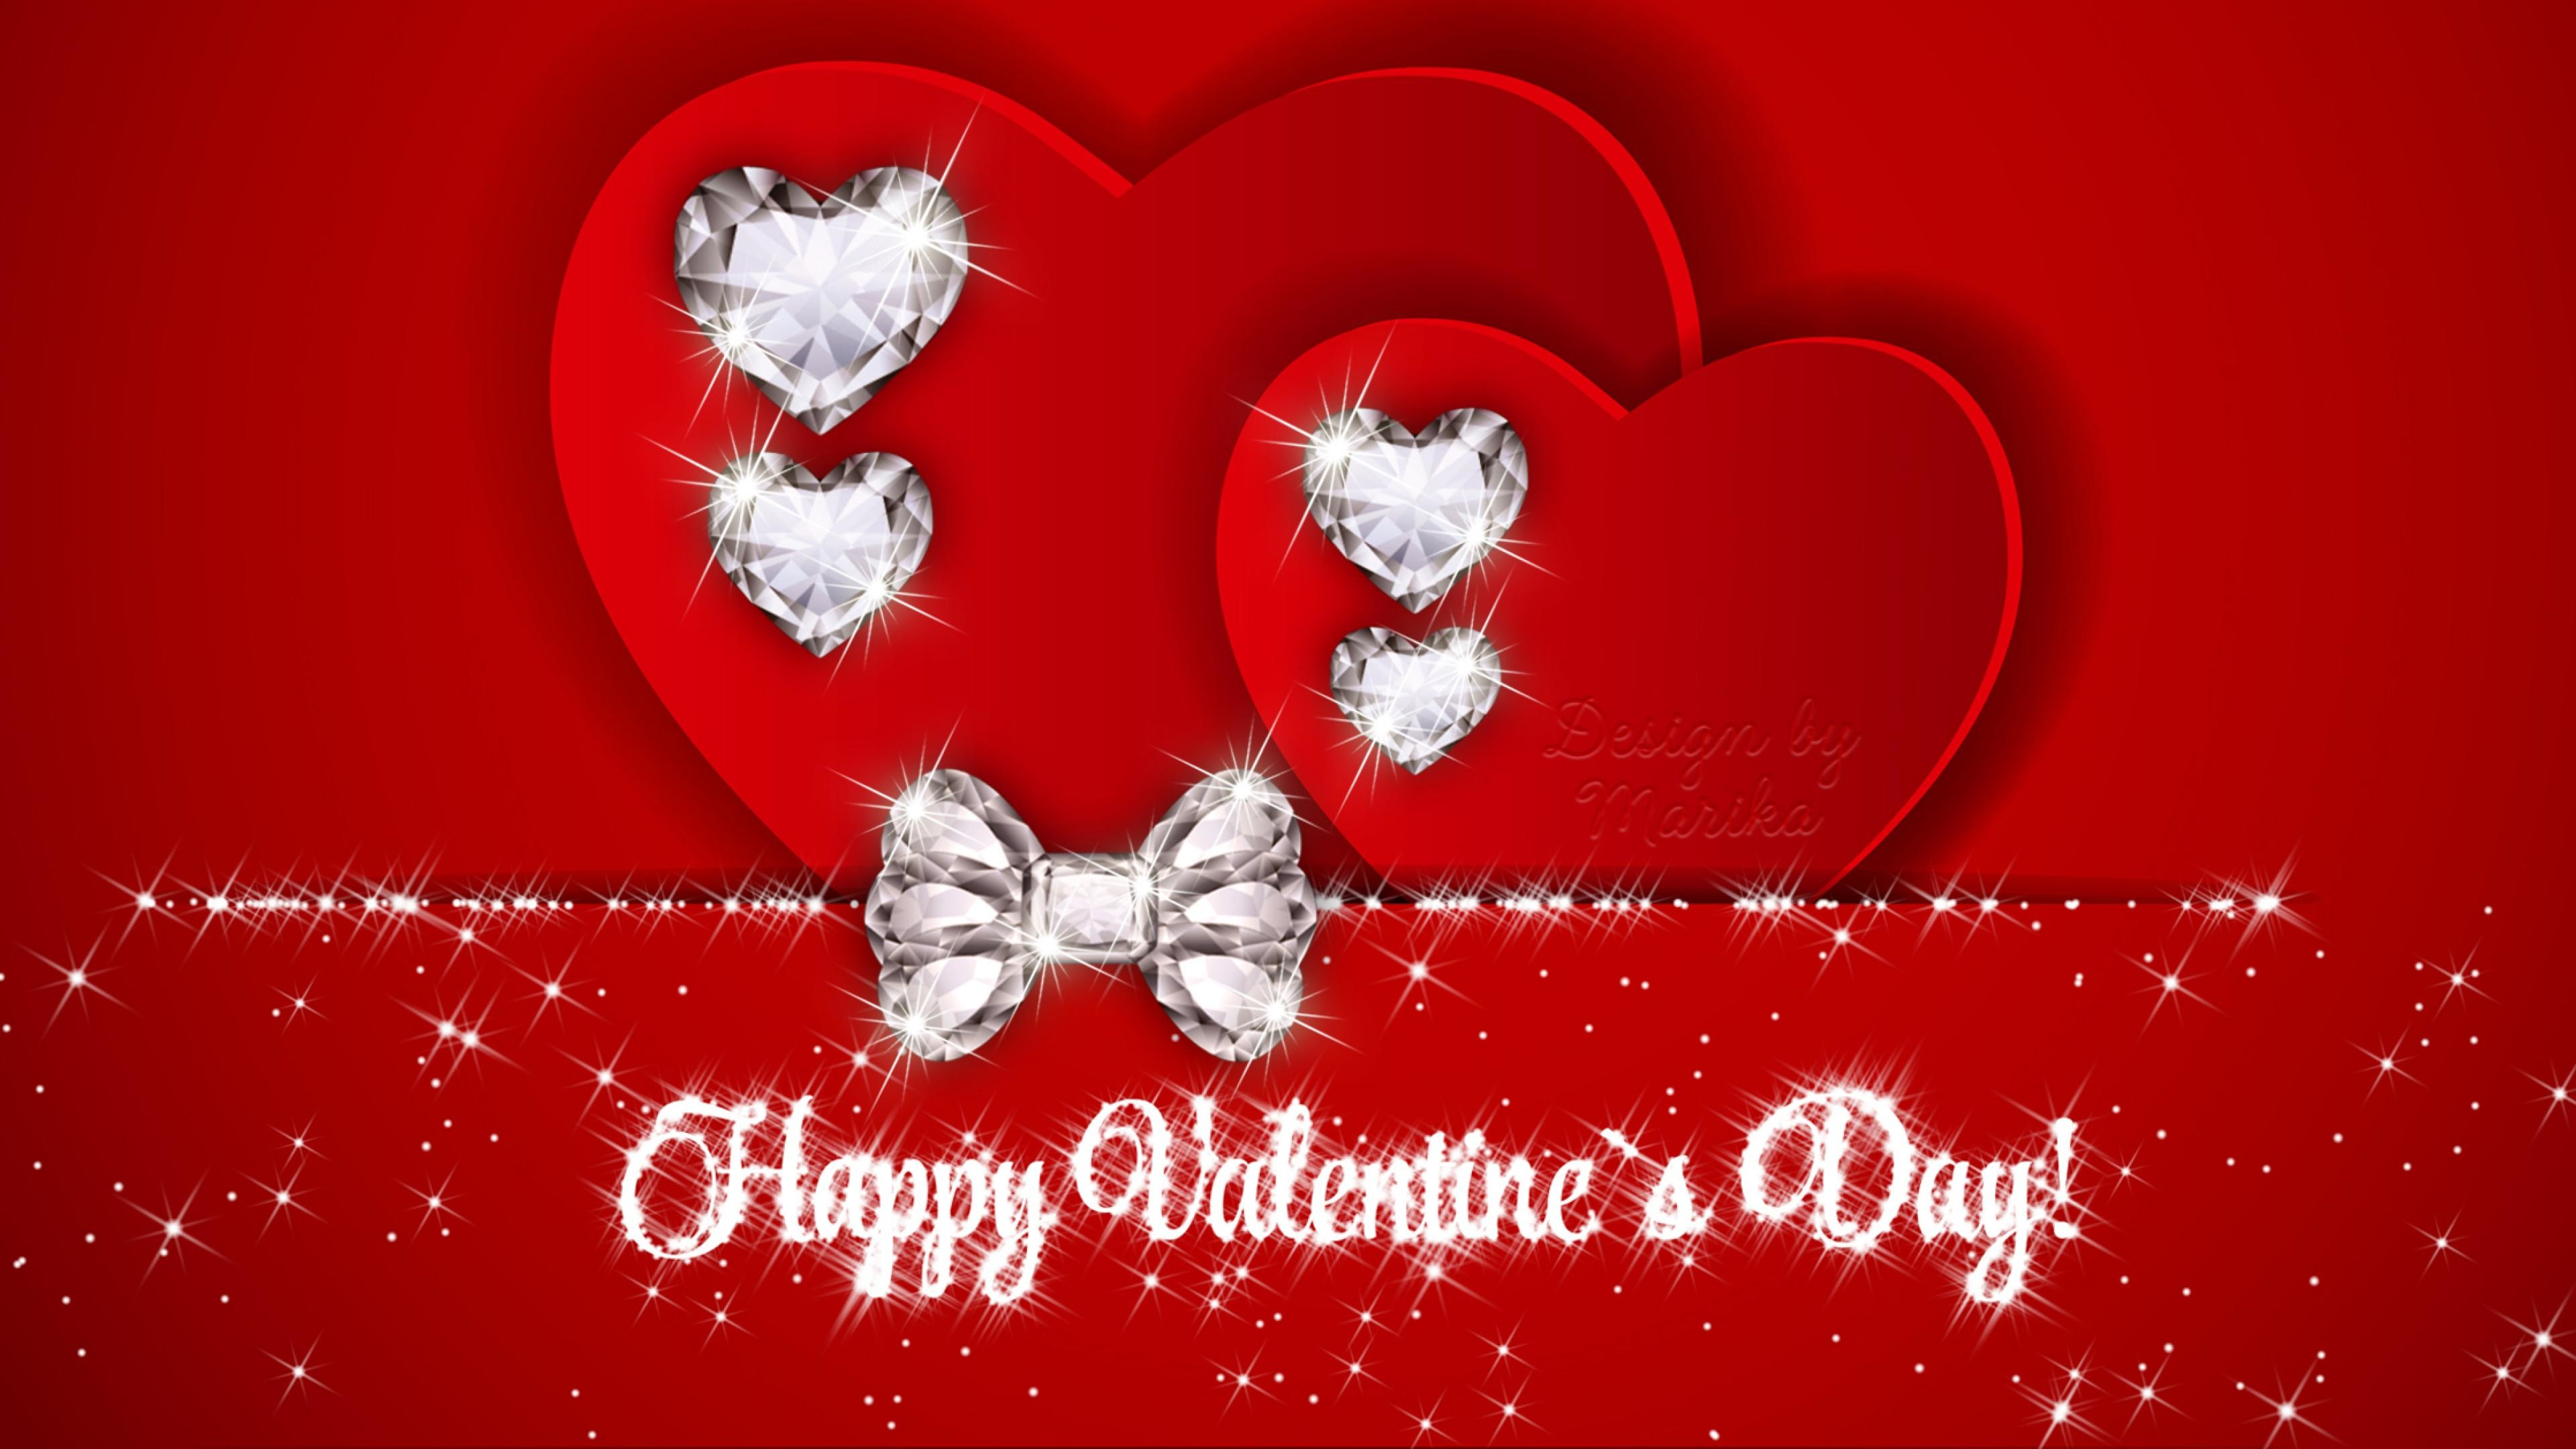 Beautiful valentine wallpapers 57 images - Valentines day background wallpaper ...